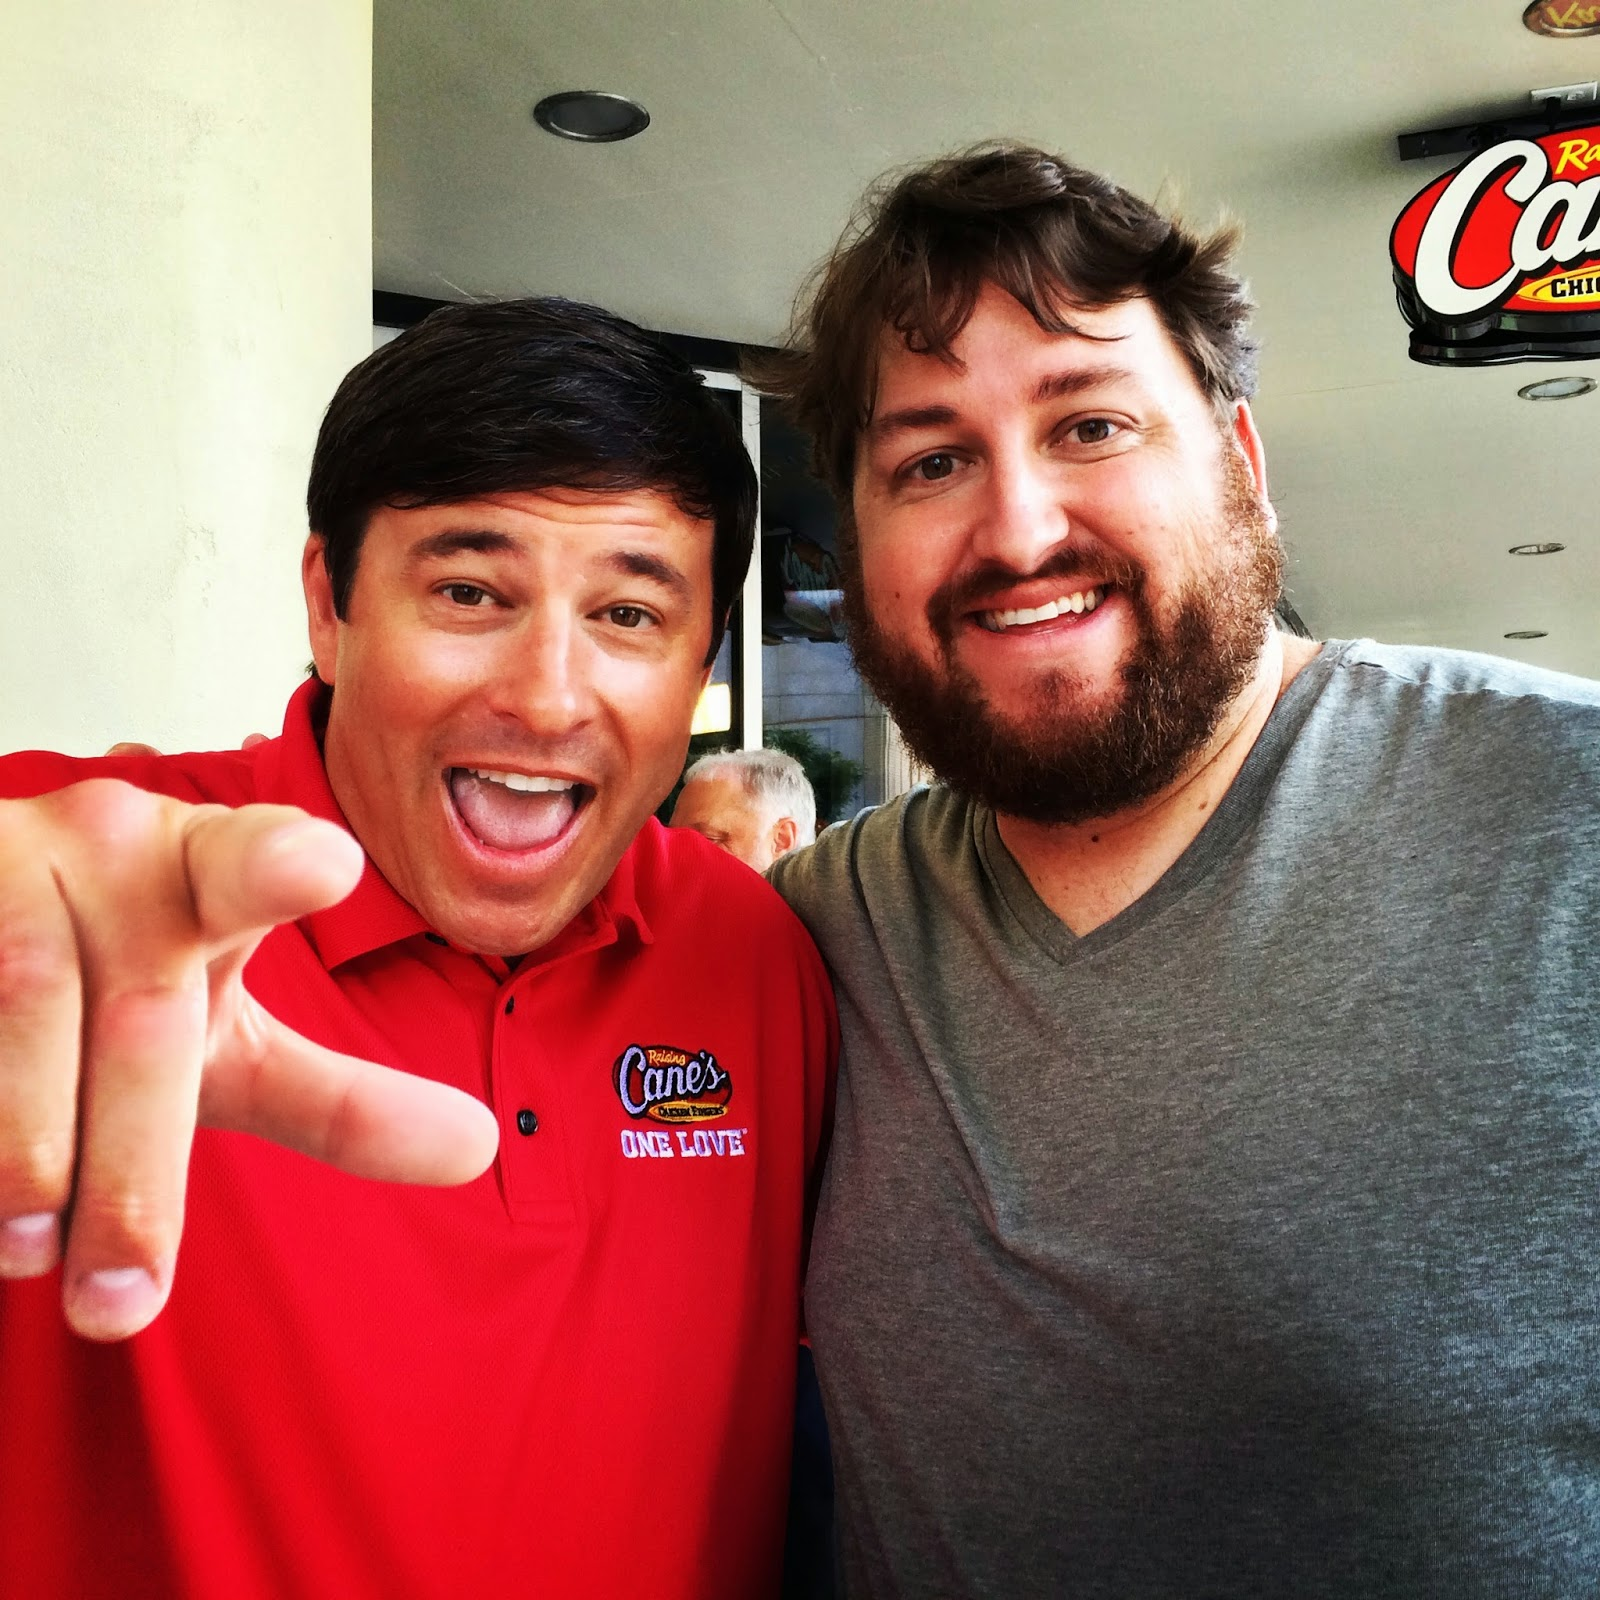 Todd Graves and Jay Ducote at the new Downtown Baton Rouge Cane's